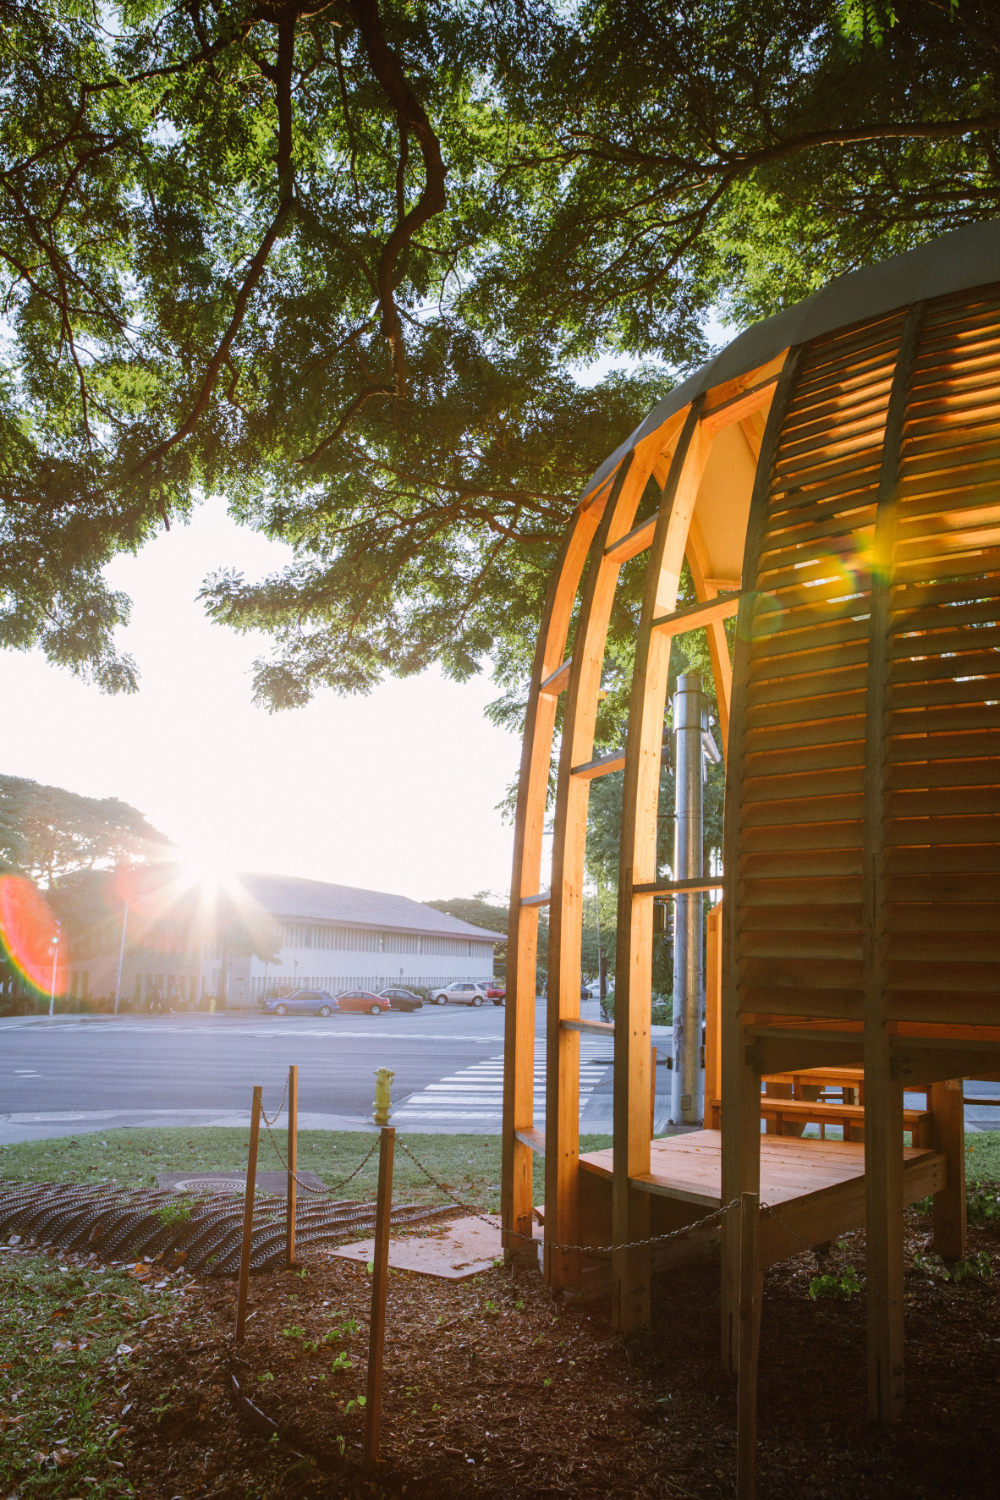 Architecture grad makes affordable homes from Hawaii's